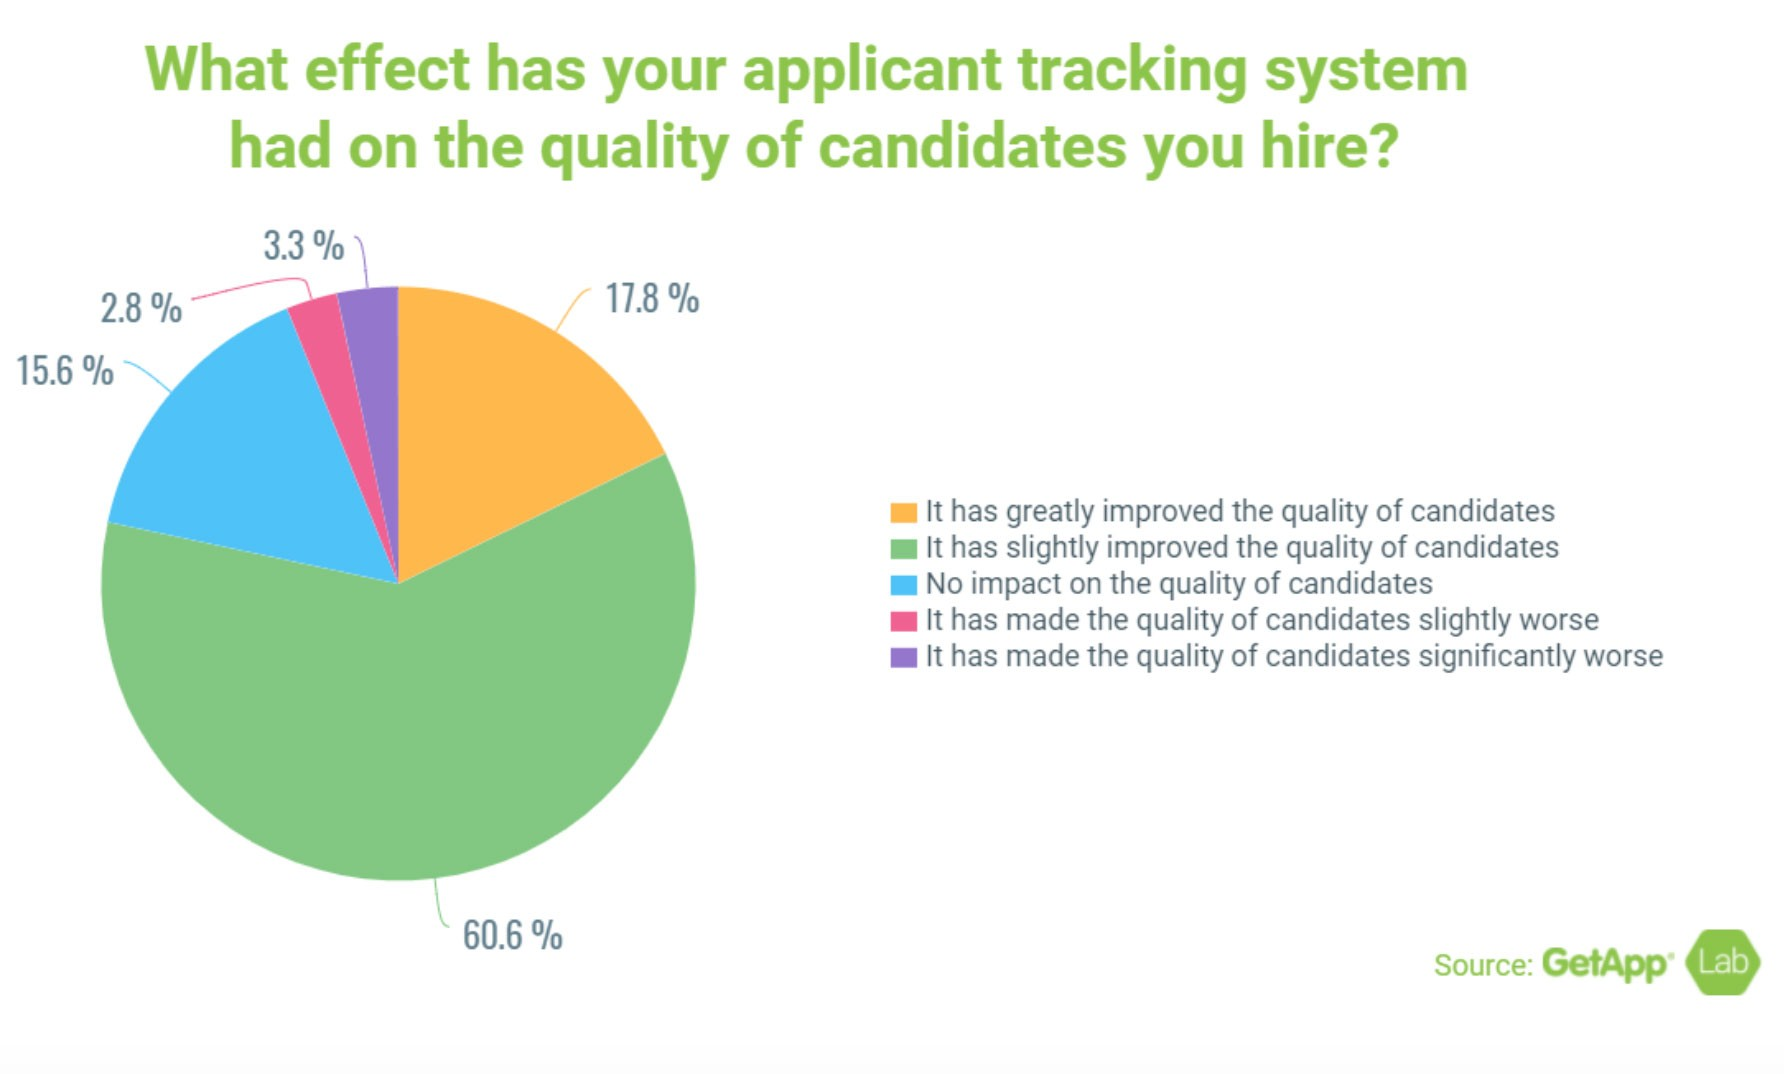 Screenshot of pie graph with headline: What effect has your applicant tracking system had on the quality of candidates you hire?  17.8% - It has greatly improved the quality of candidates 60.6% - It has slightly improved the quality of candidates 15.6% - No impact on the quality of candidates 2.8% - It has made the quality of candidates slightly worse 3.3% - It has made the quality of candidates significantly worse